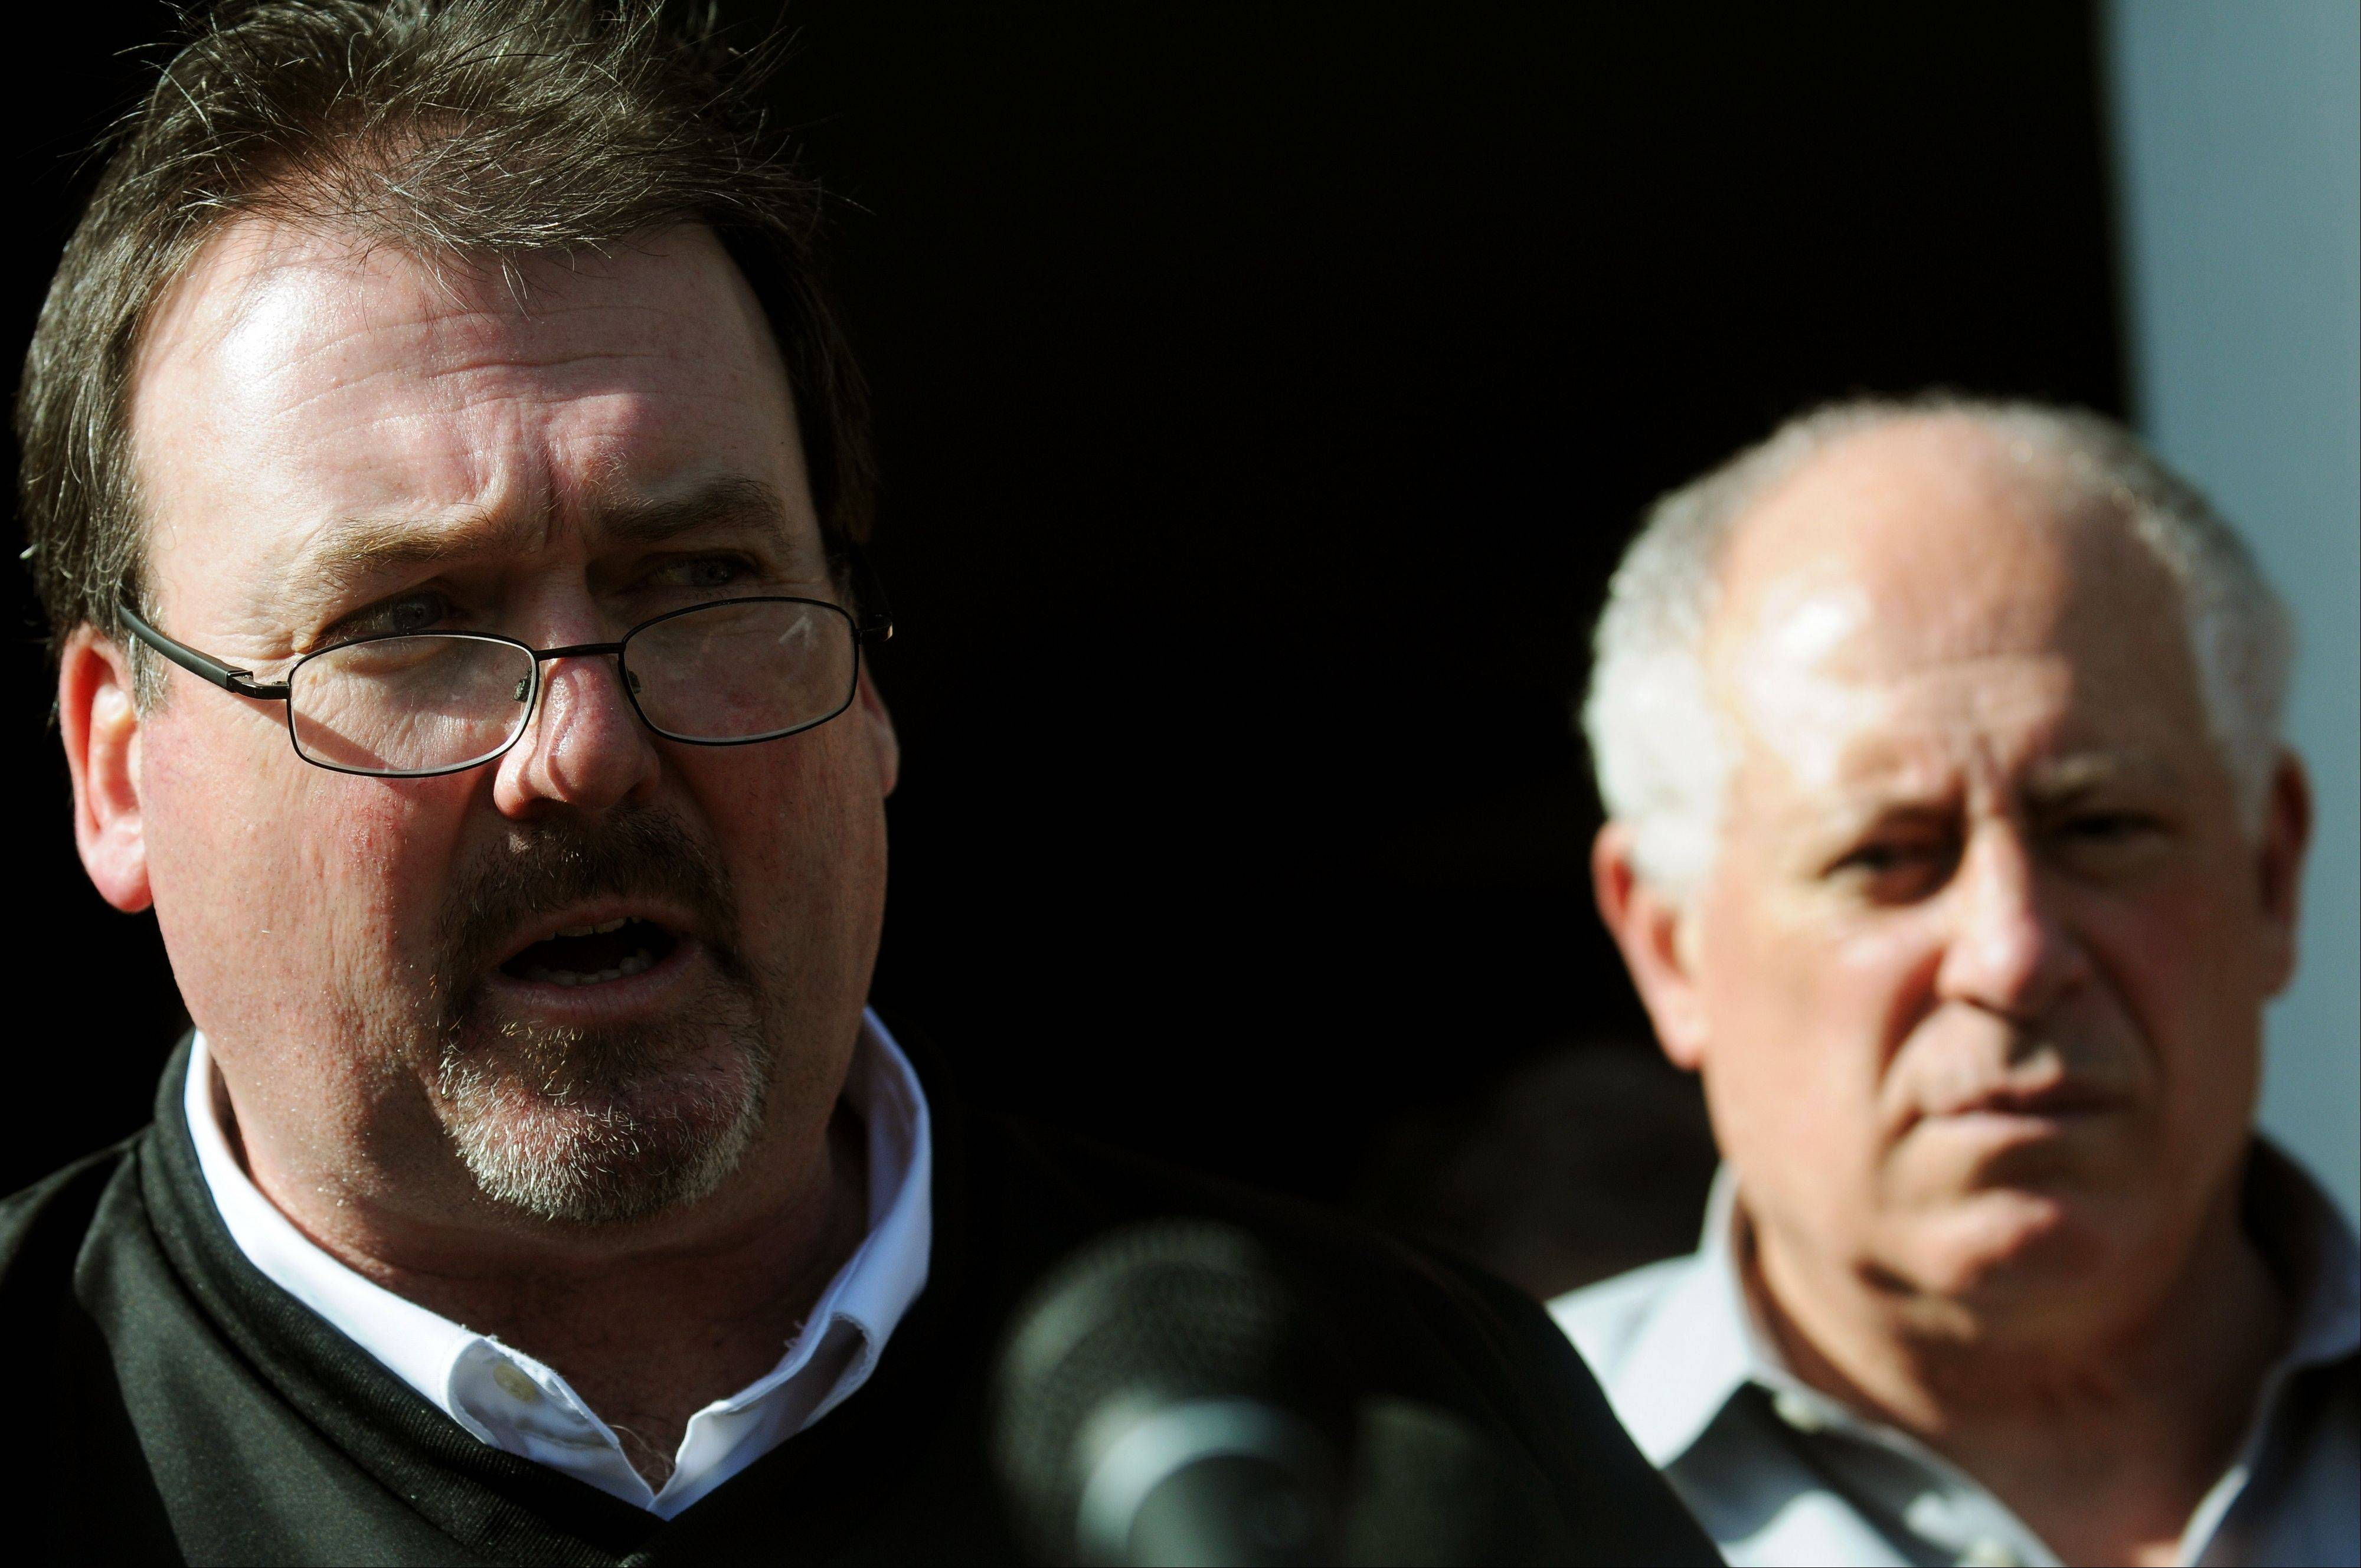 Harrisburg Mayor Eric Gregg talks about the destruction from a tornado as Illinois Gov. Pat Quinn listens during a news conference in Harrisburg, Ill., Wednesday, Feb. 29, 2012.